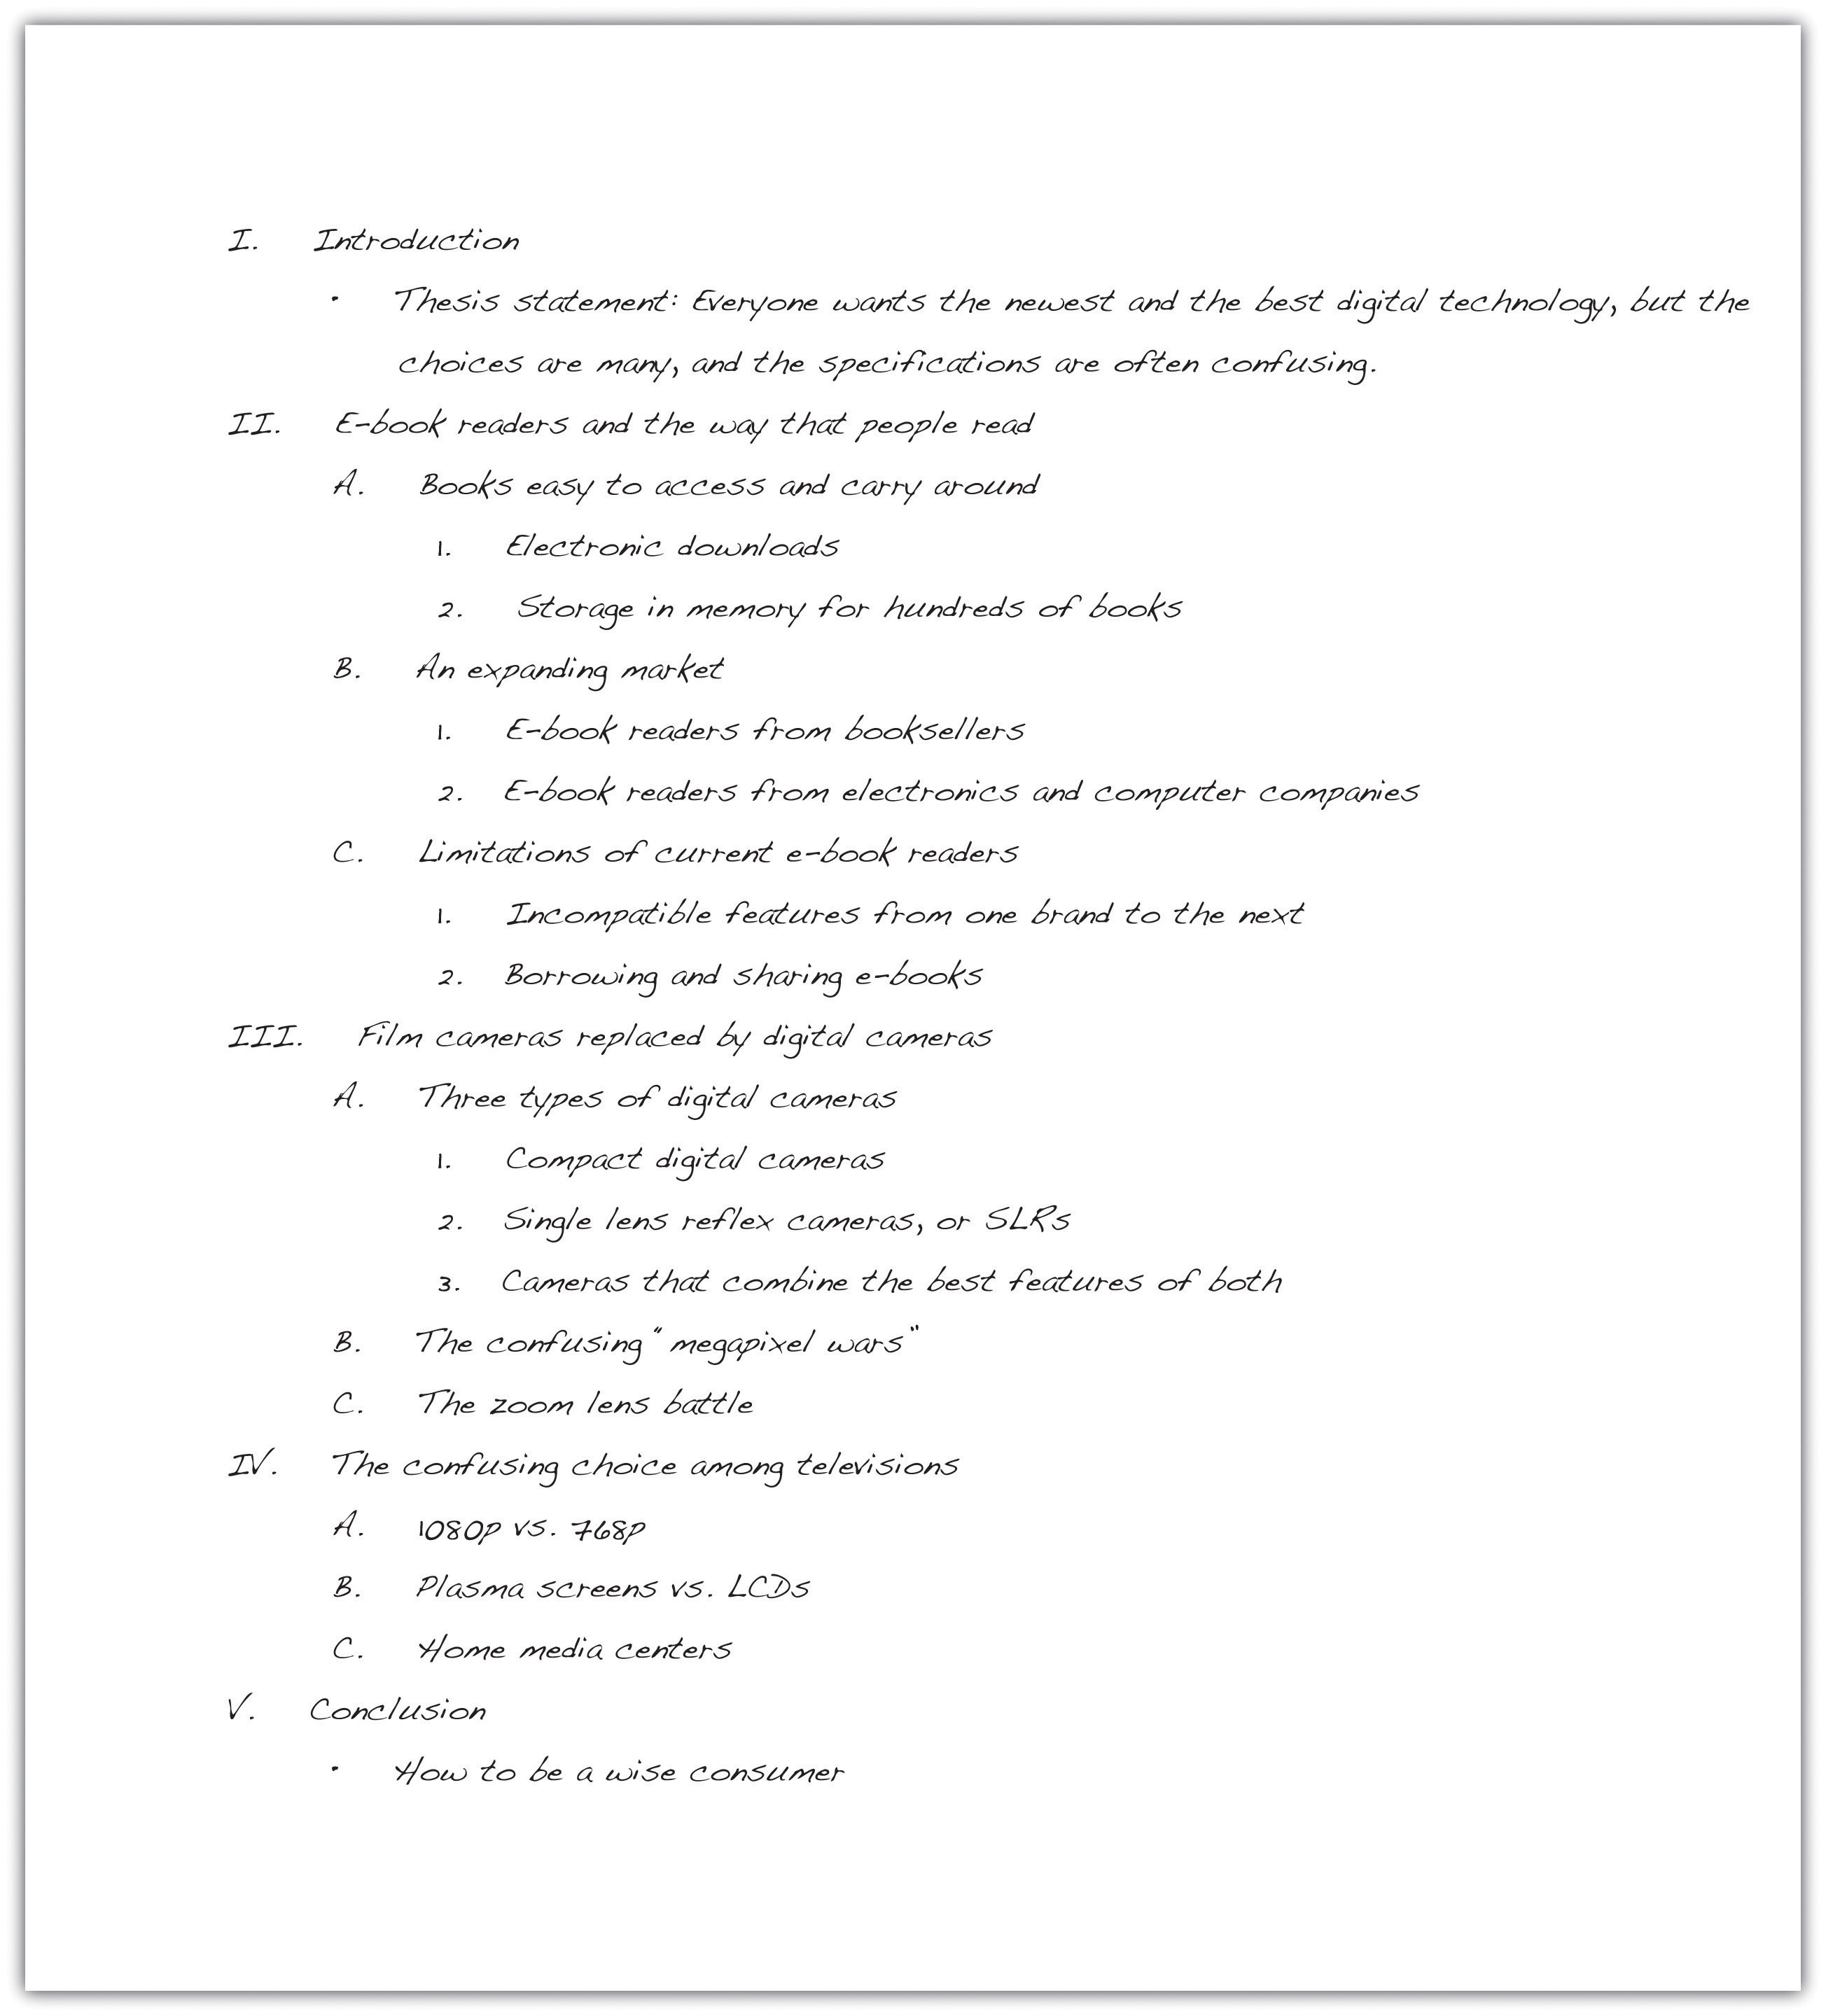 011 Research Paper Sample Outlines For Awful Papers Writing Full